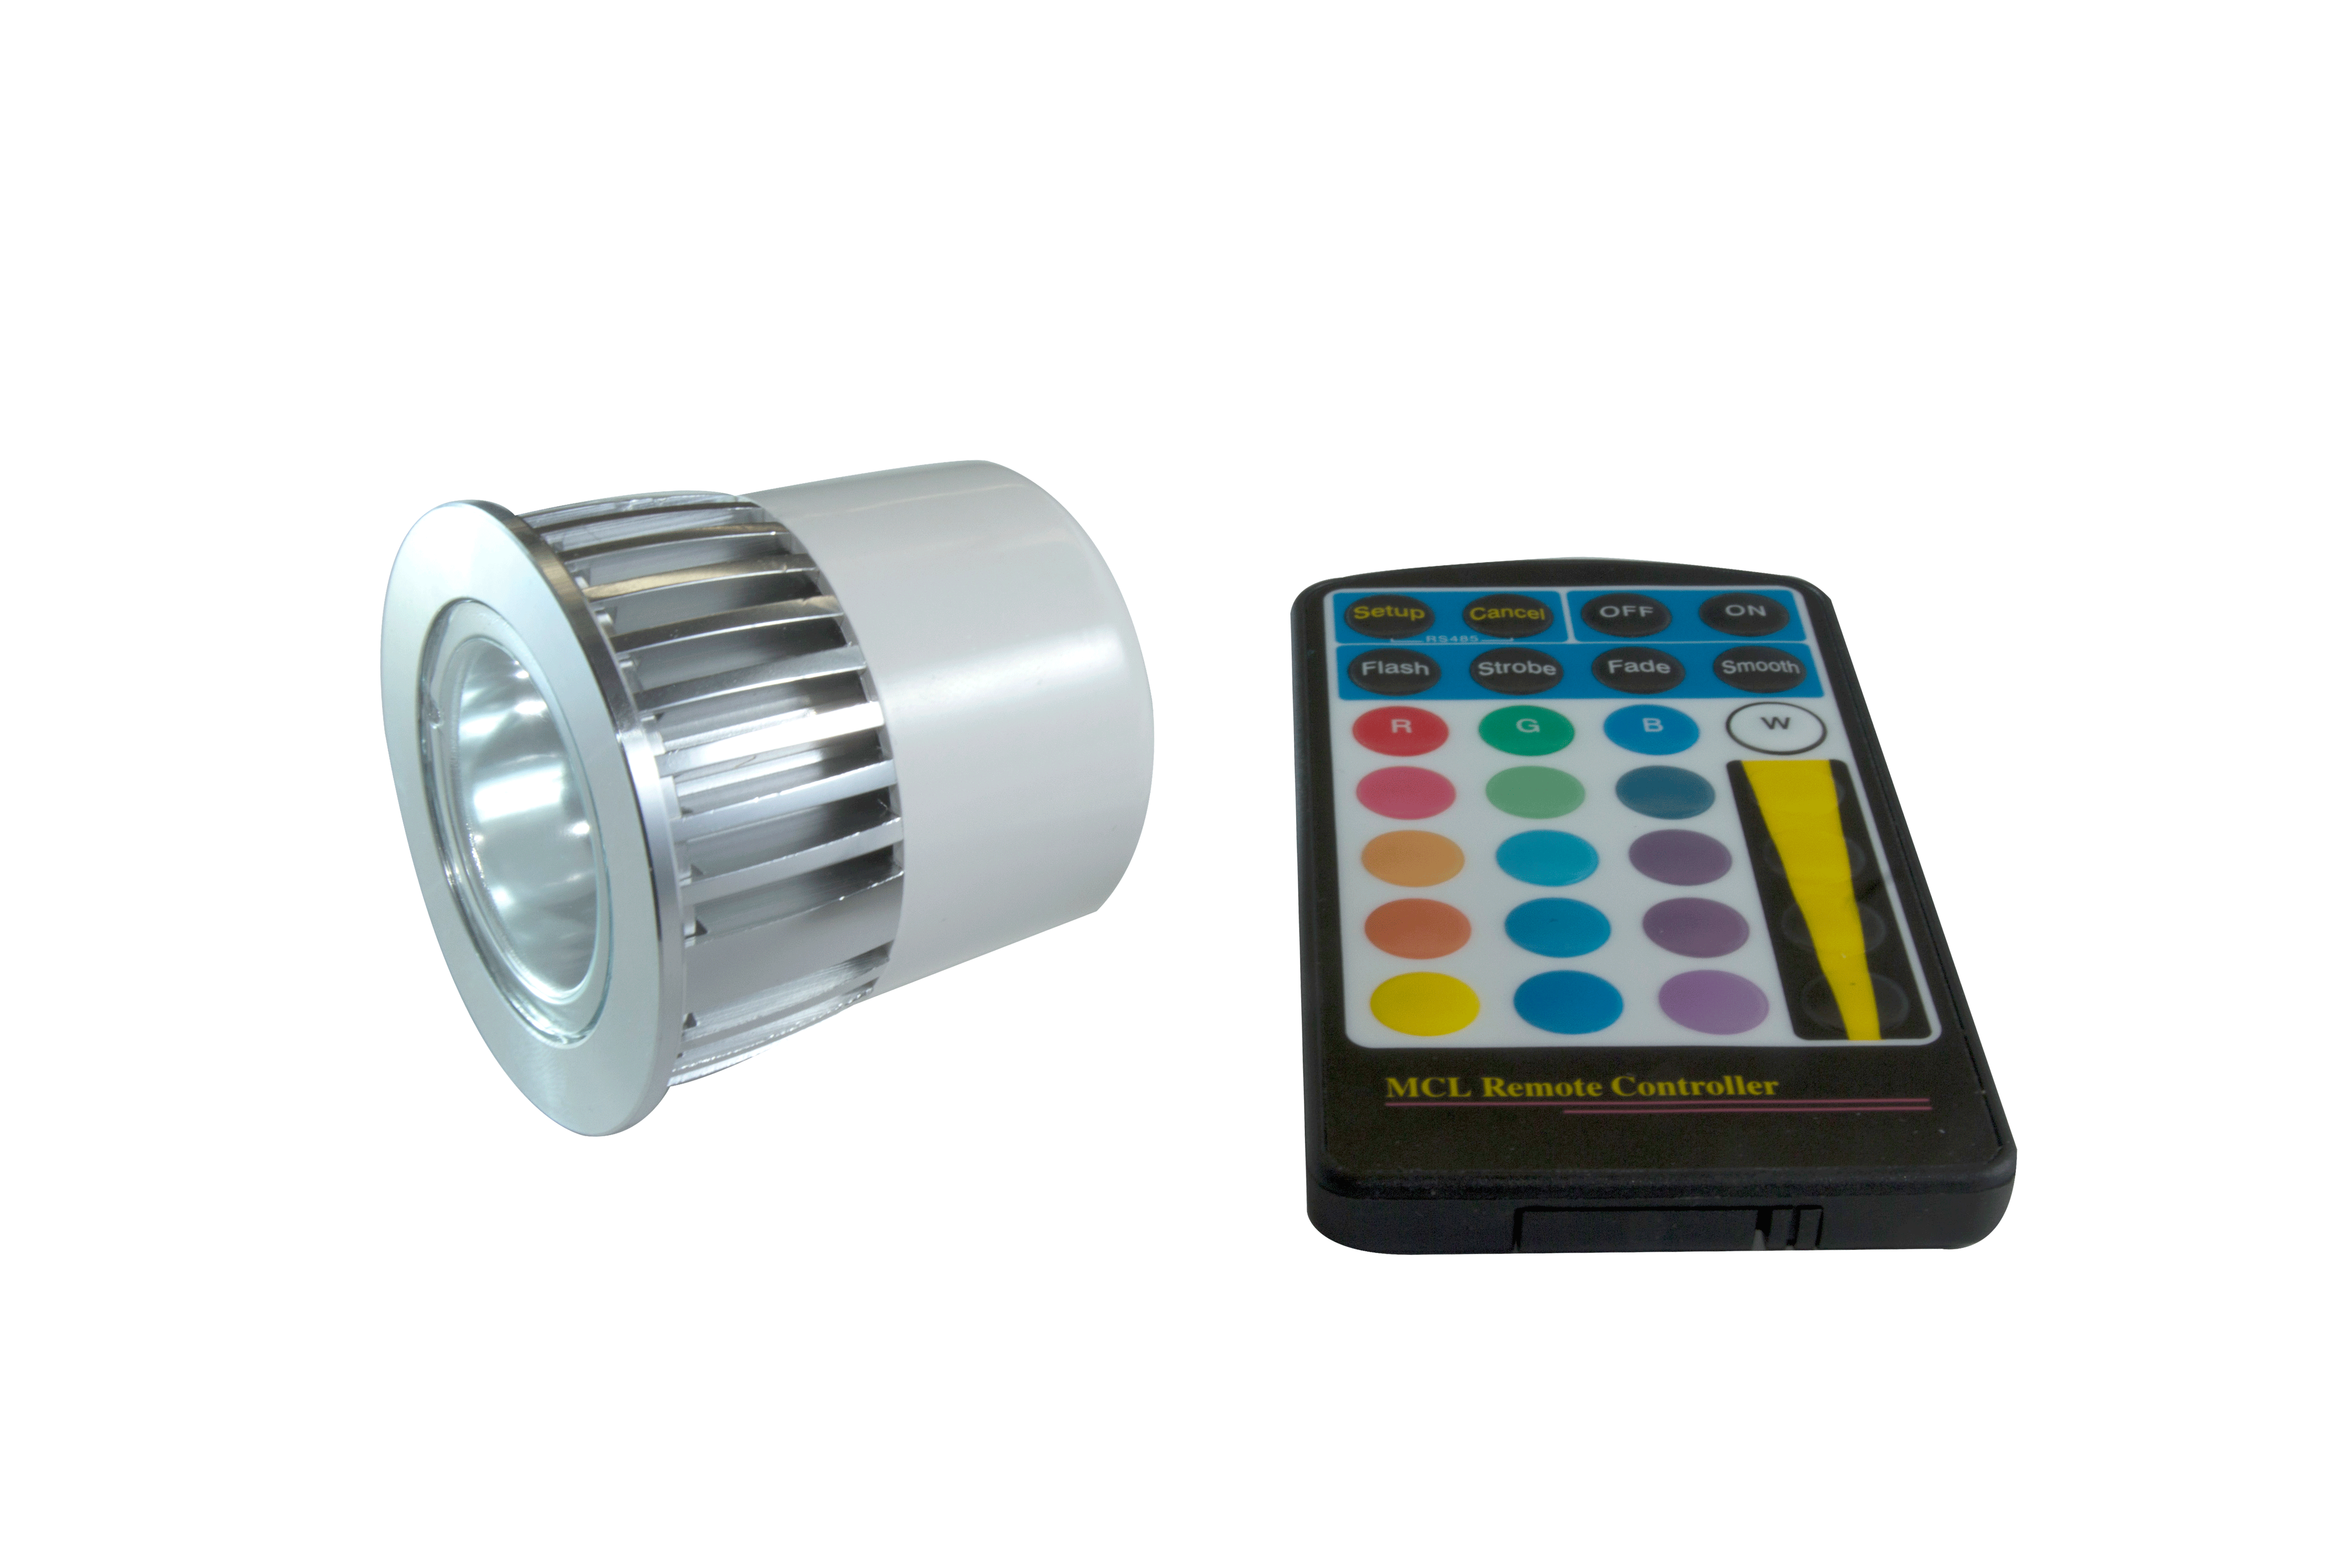 6 watt rgb led lamp eco light up domestic led lighting rgb led lamp with remote parisarafo Image collections